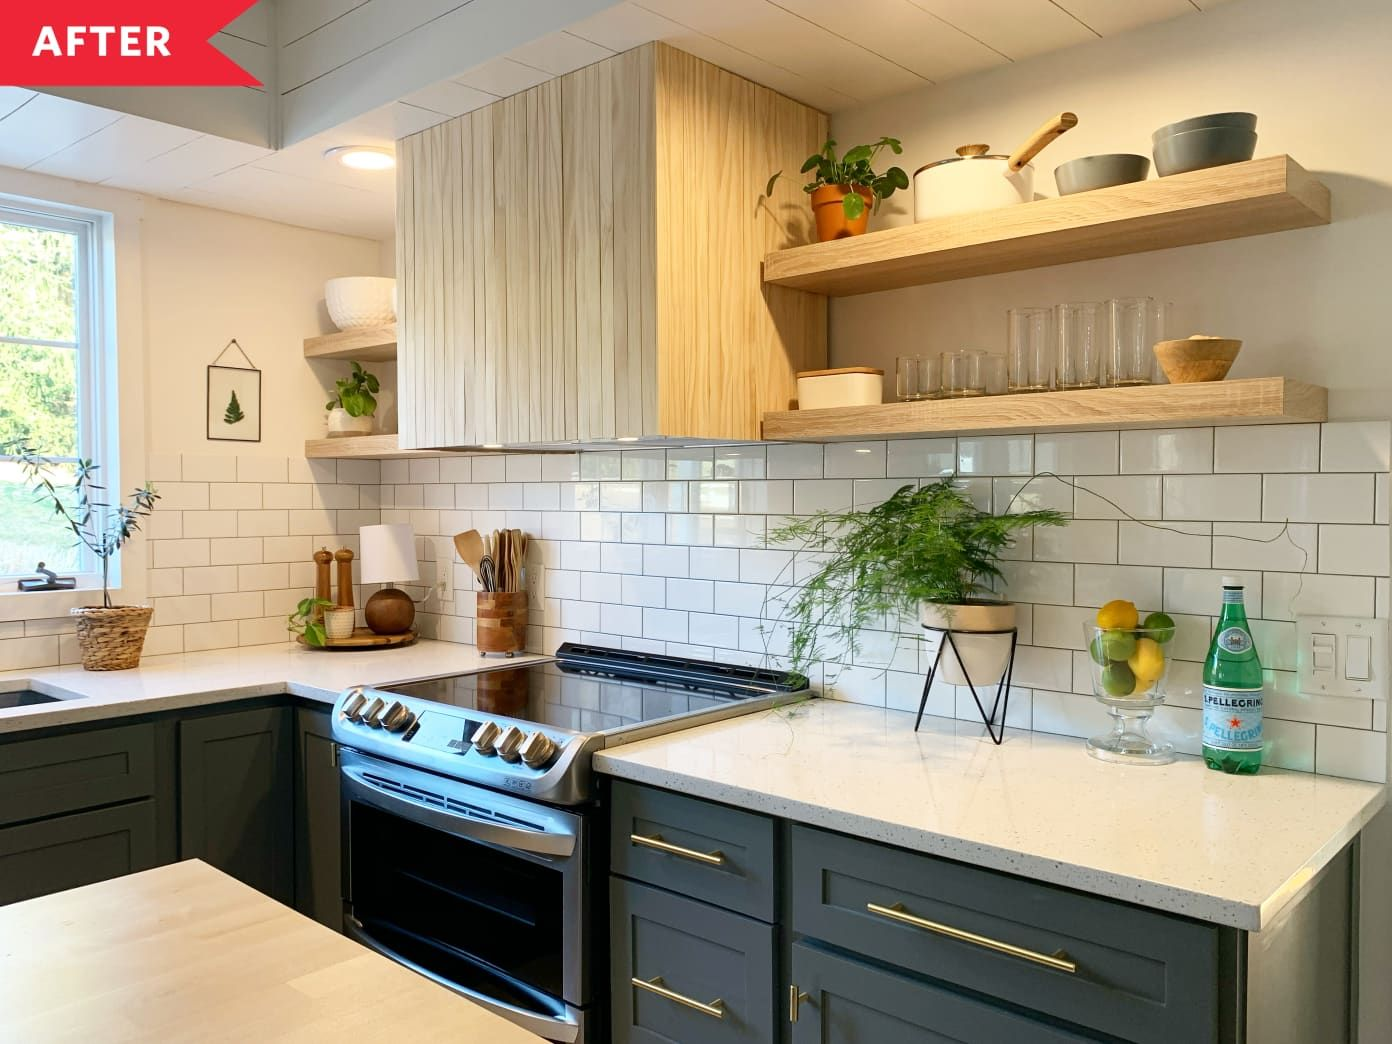 Before And After Just 2 000 Turns This 90s Kitchen Into A Scandi Boho Dream In 2020 Kitchen Remodel Budget Kitchen Remodel Brown Kitchens